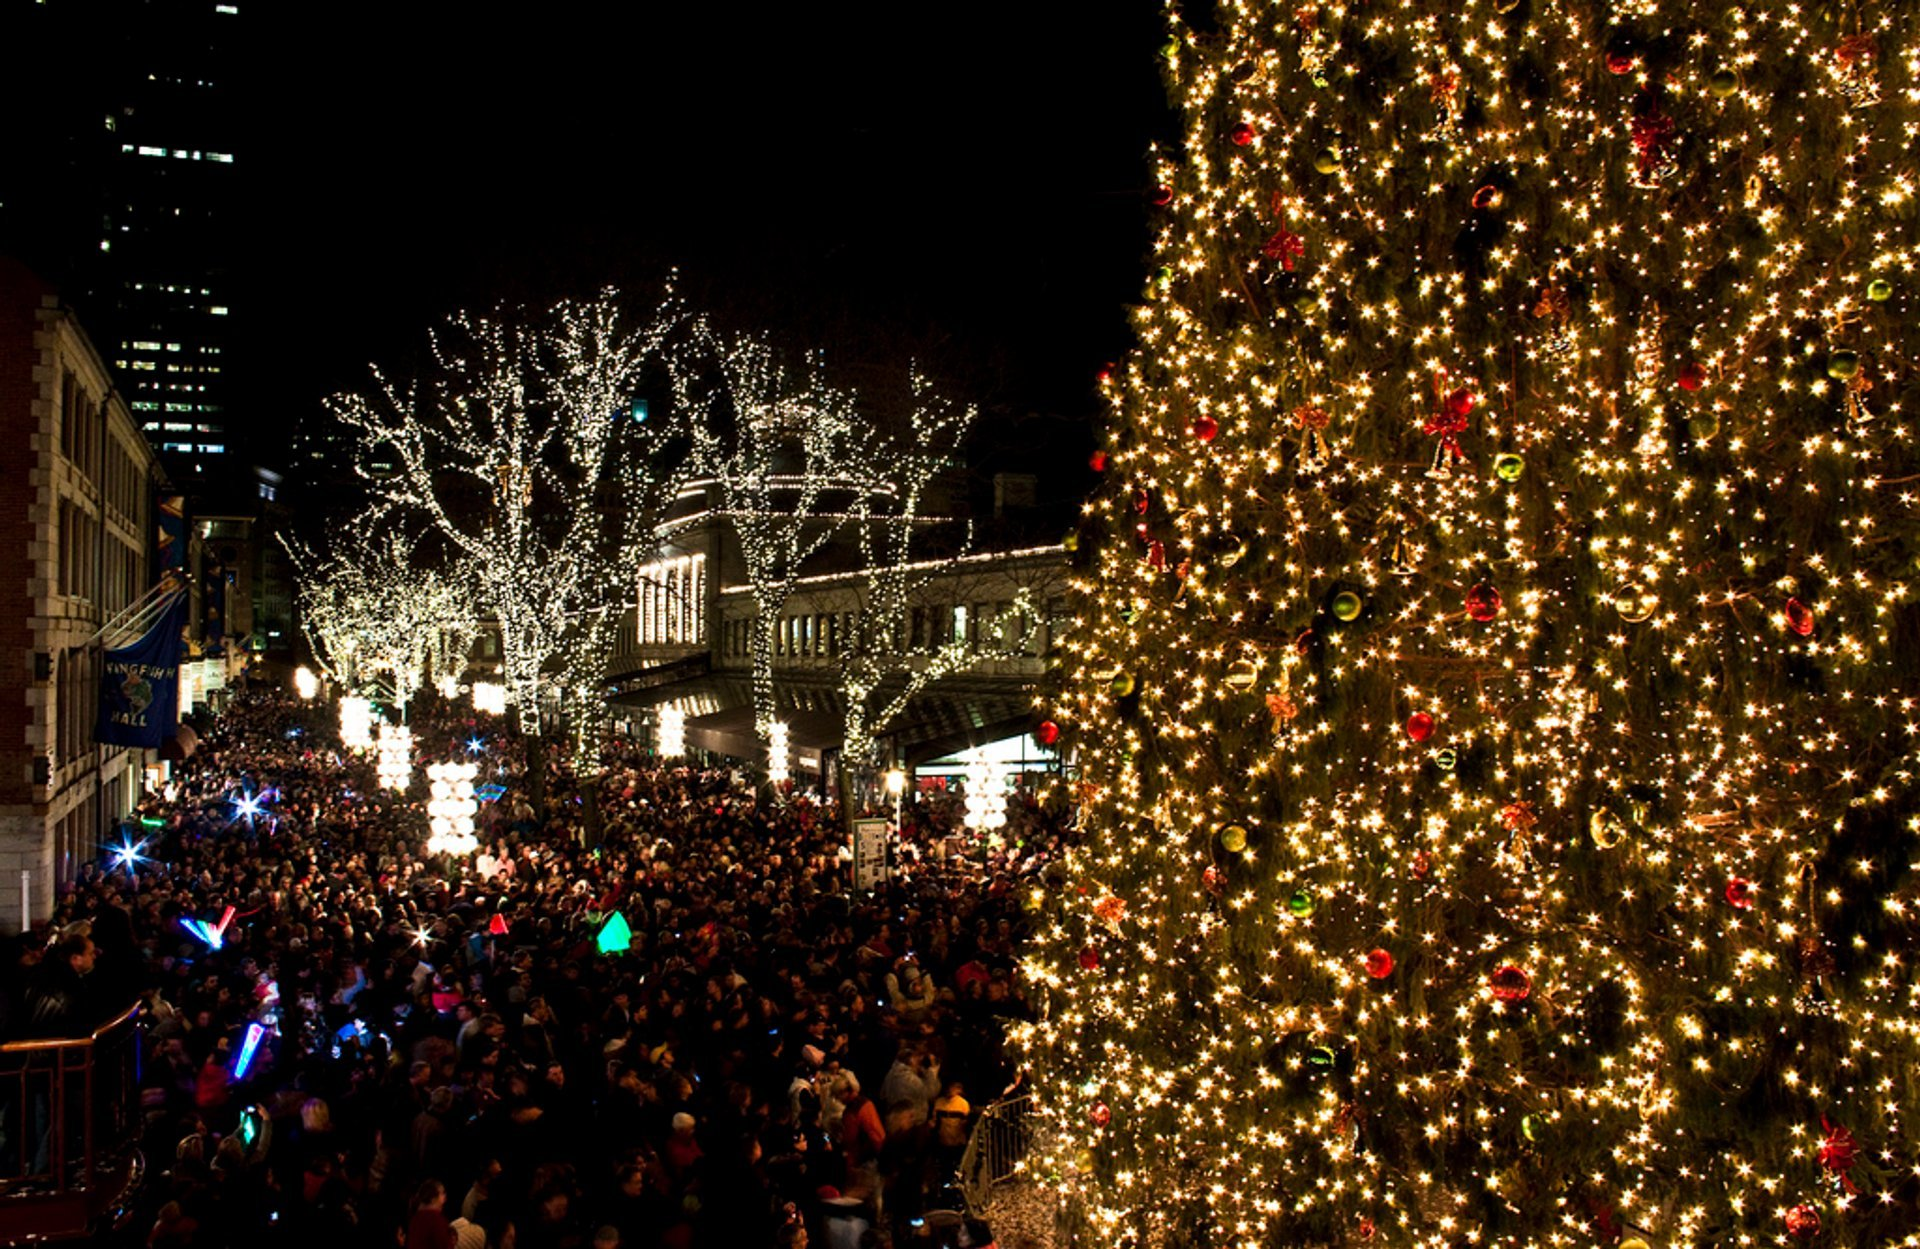 Faneuil Hall Christmas Tree Lighting 2019 Christmas Tree Lighting 2019 in Boston   Dates & Map